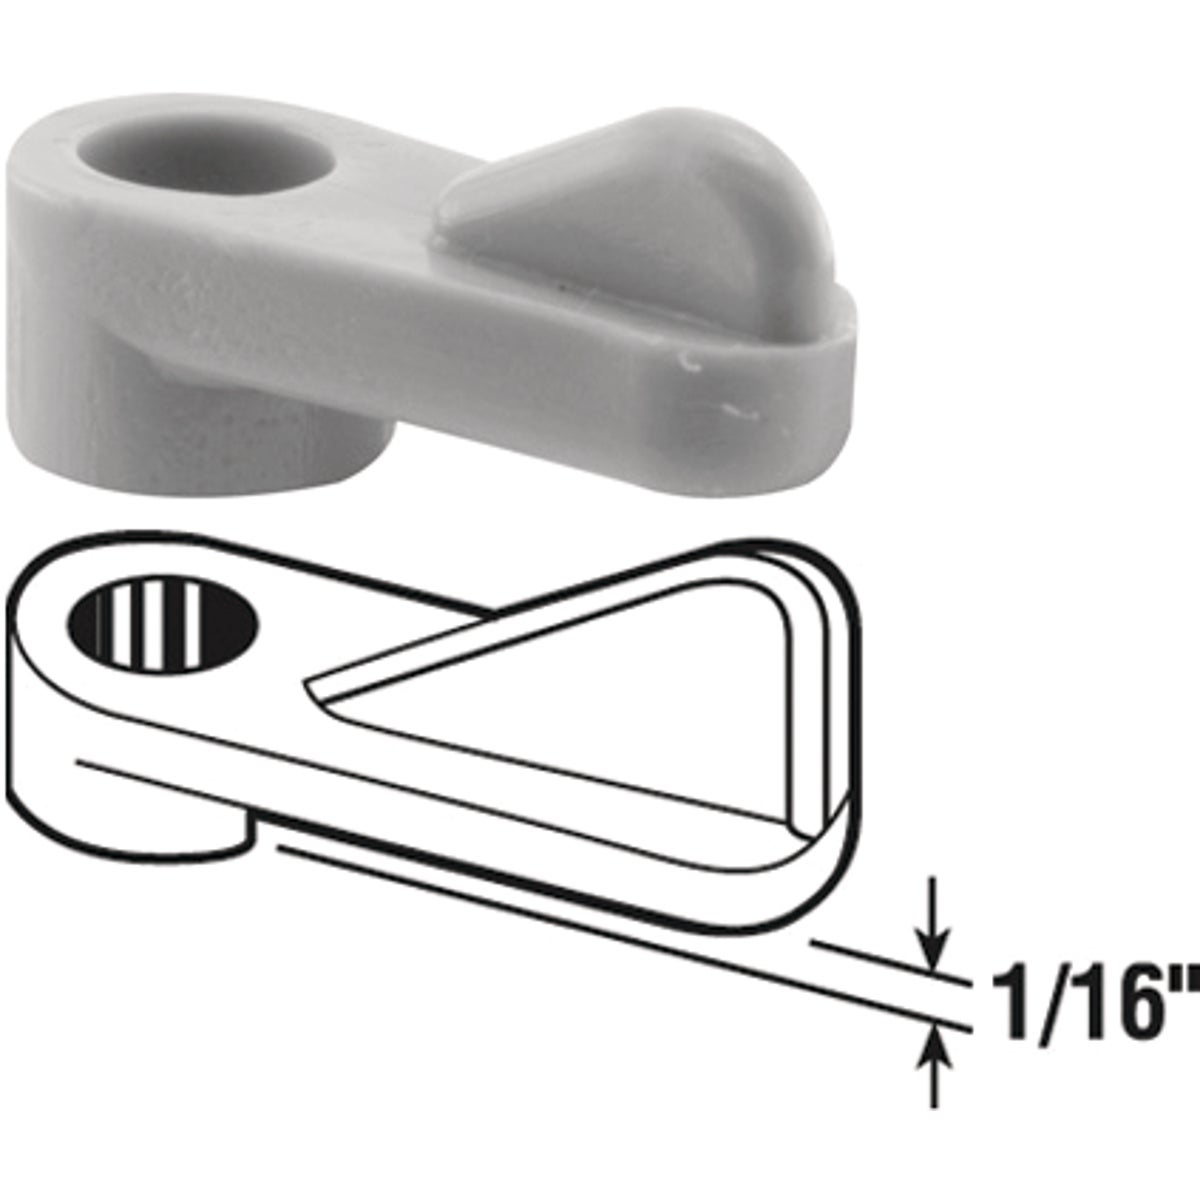 "1/16""WINDOW SCREEN CLIPS - 182932-1 by Prime Line Products"